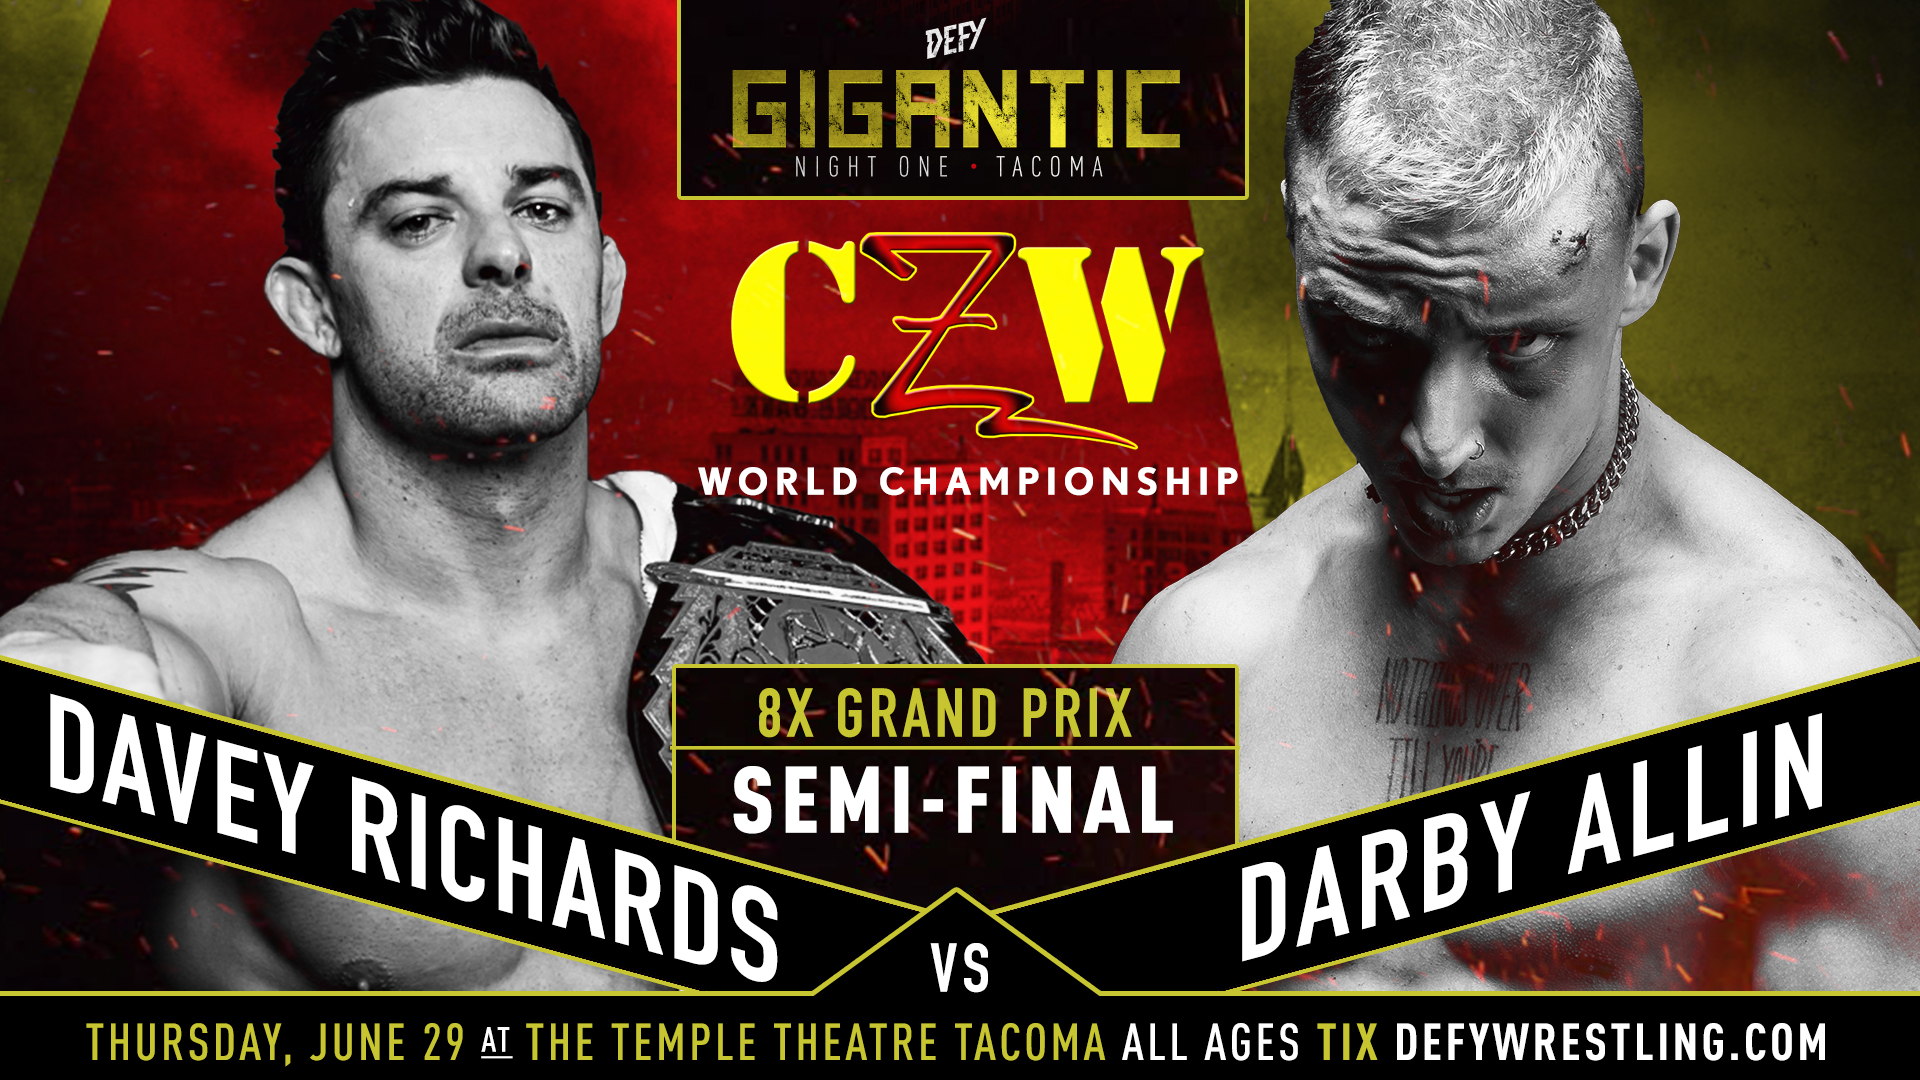 Davey defends his CZW World Championship against Darby Allin at DEFY4 on June 29th in Tacoma. Tickets at DefyWrestling.com